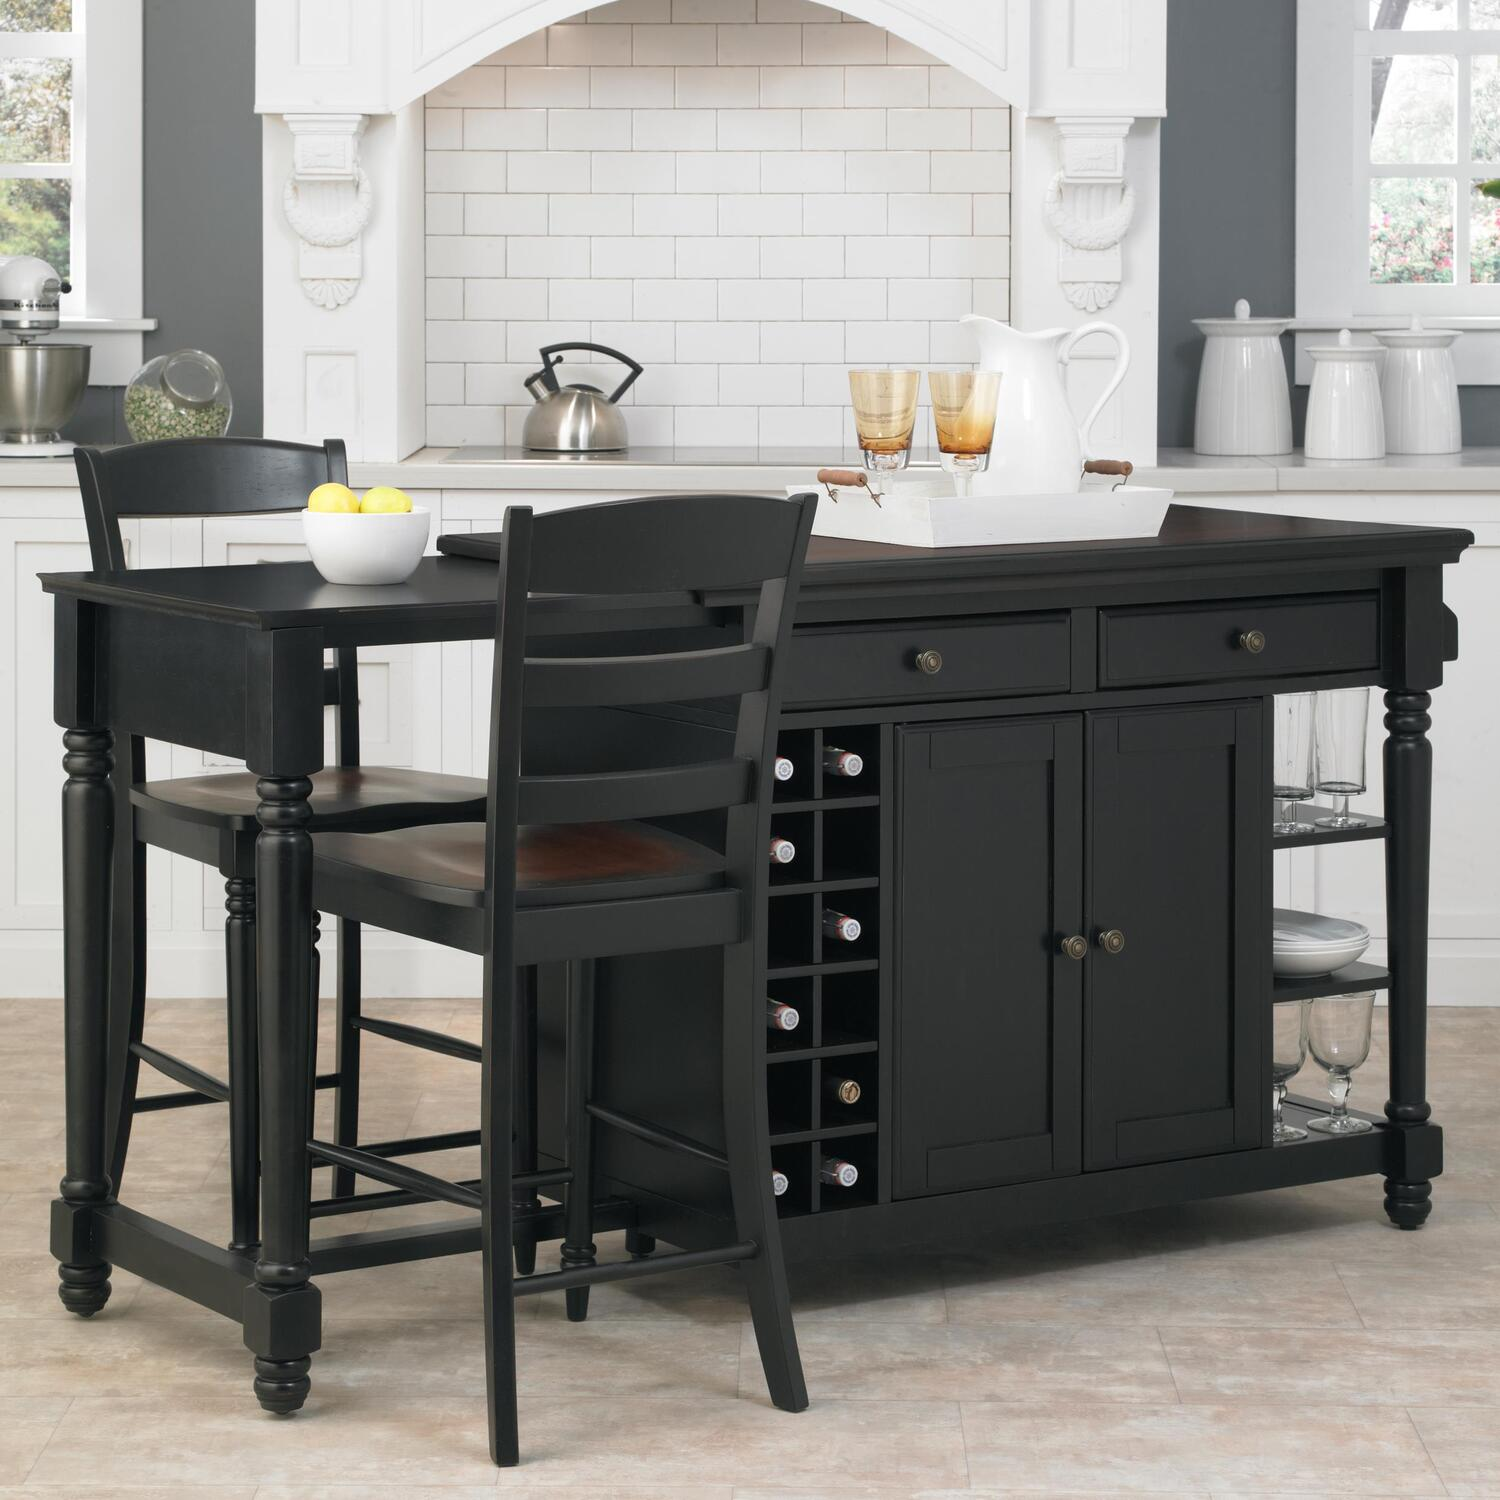 Kitchen Island Table And Chairs: Furniture, Home Goods, Appliances, Athletic Gear, Fitness, Toys, Baby Products, Musical